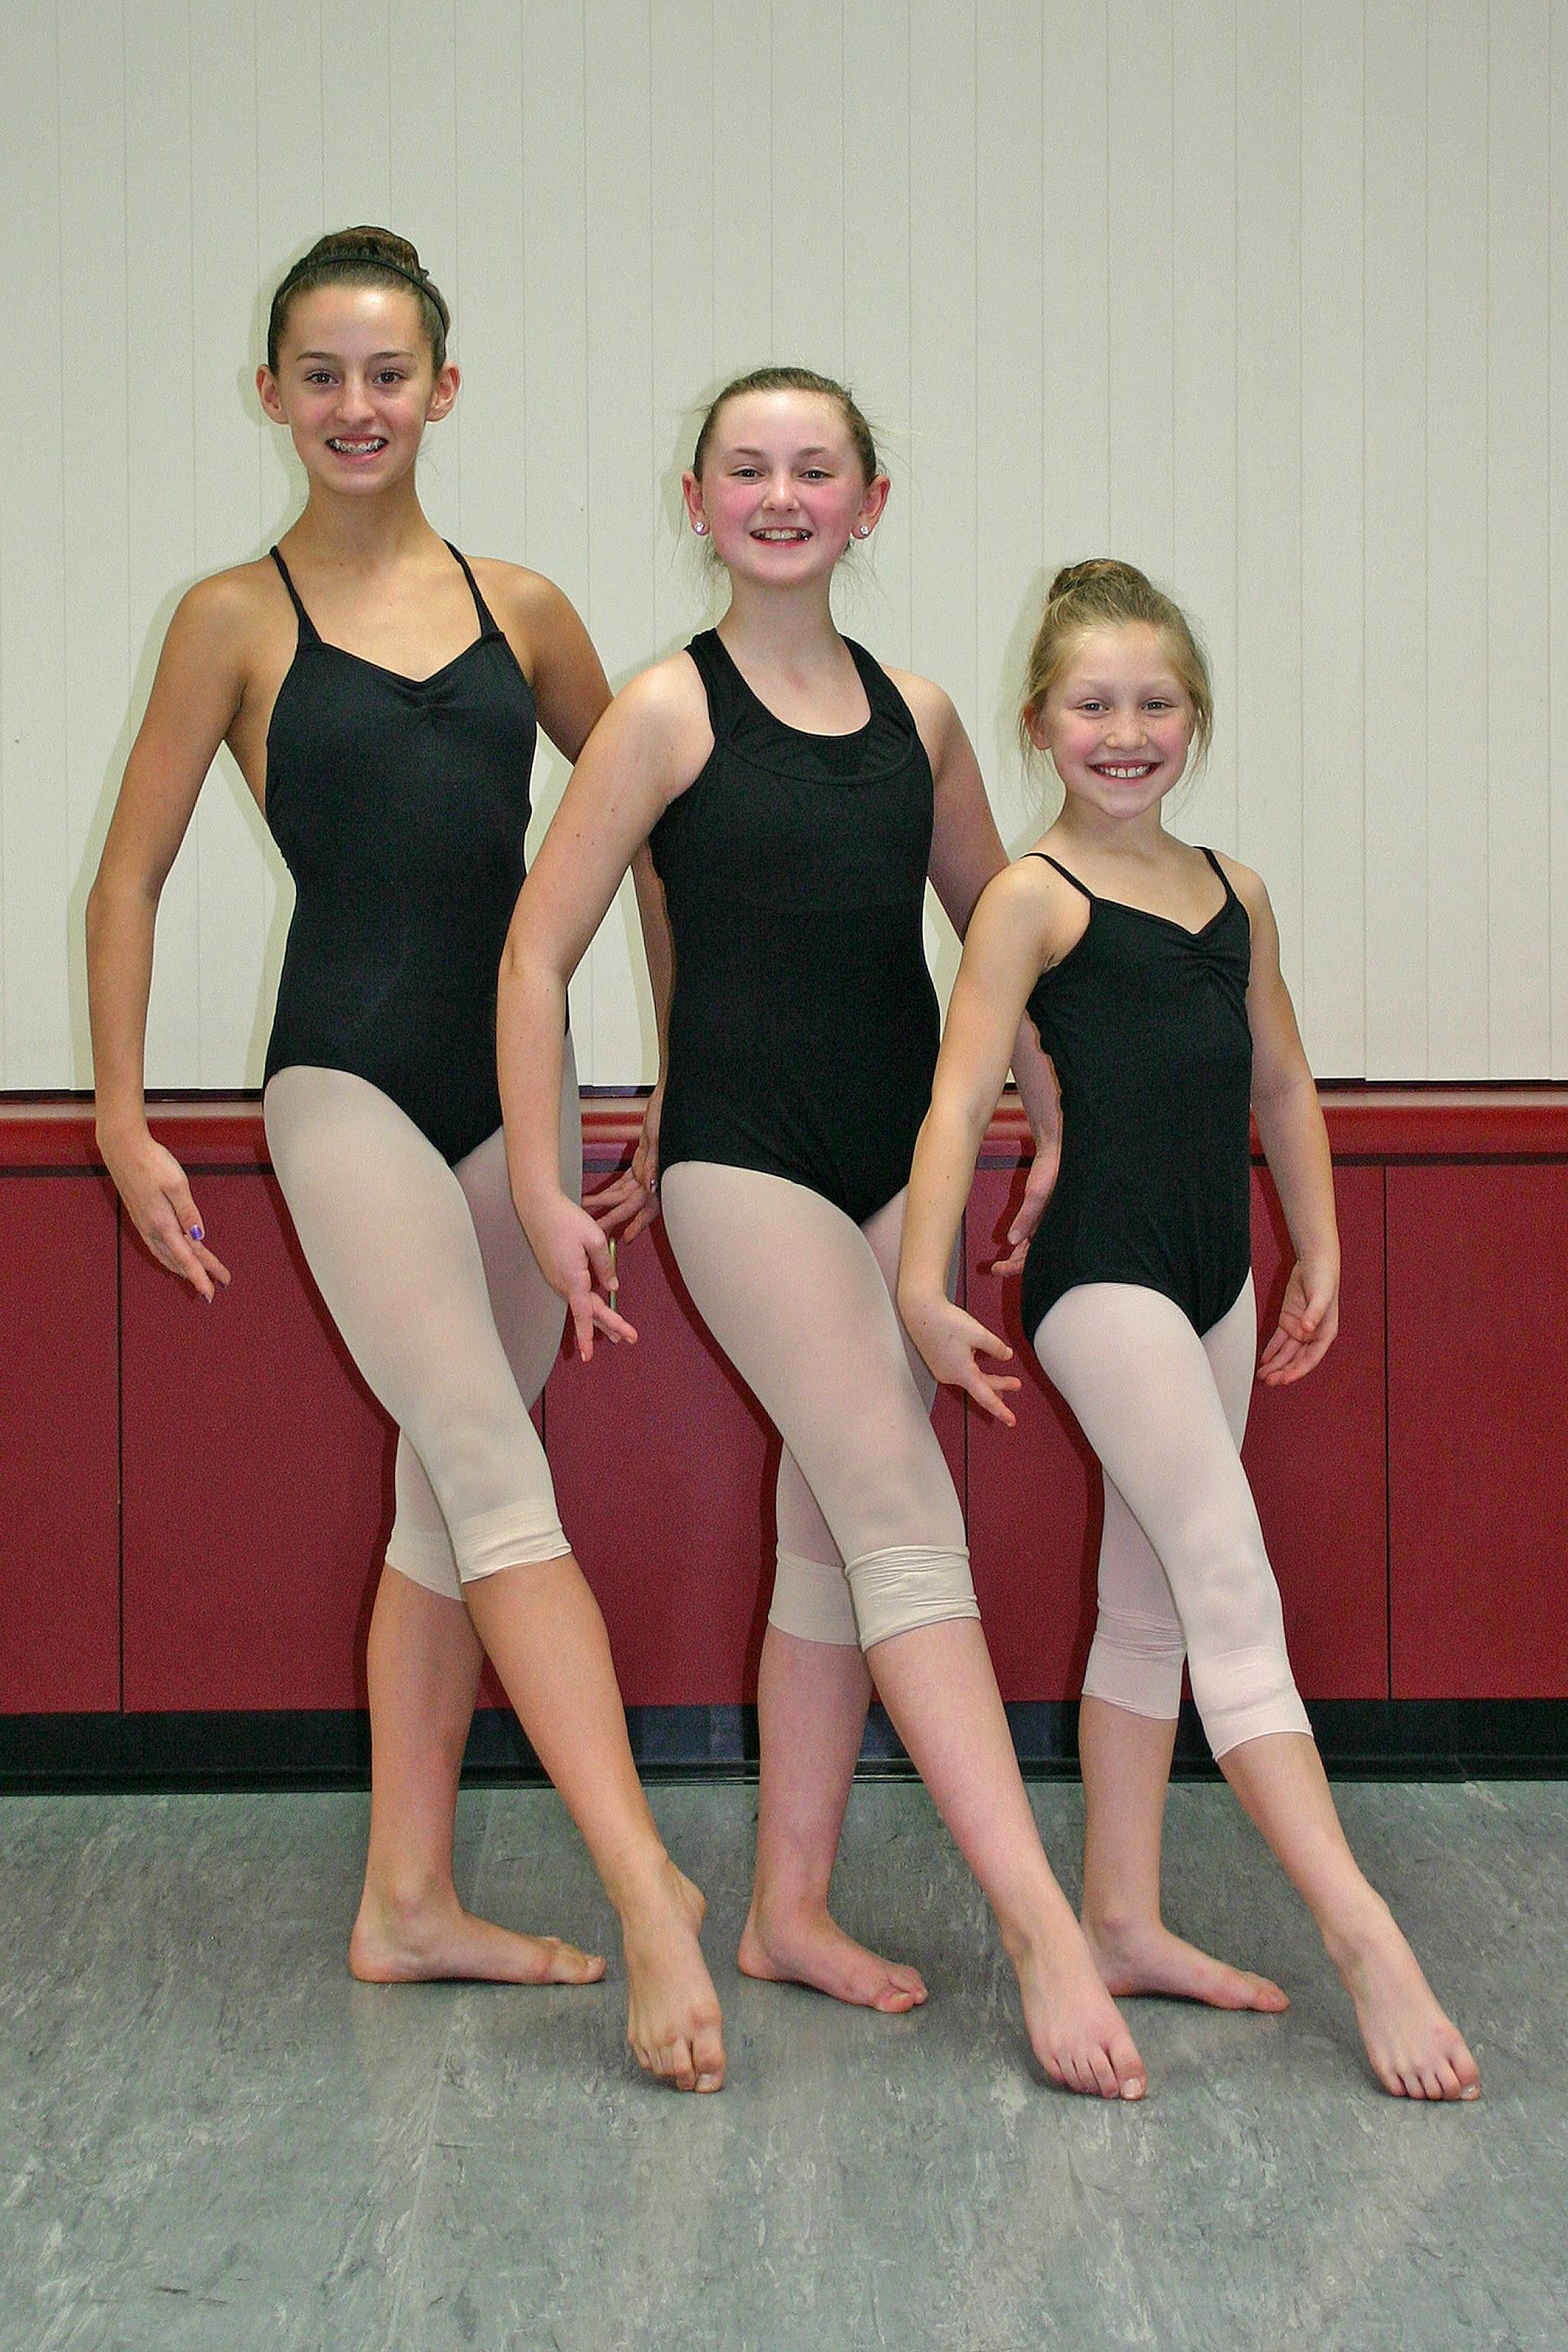 Left to Right: Meghan Hanrahan, Kim Fairhead, and Jordin Suwalski, representing Artistry in Motion, won top awards at the November 9-11 24Seven Dance Competition.